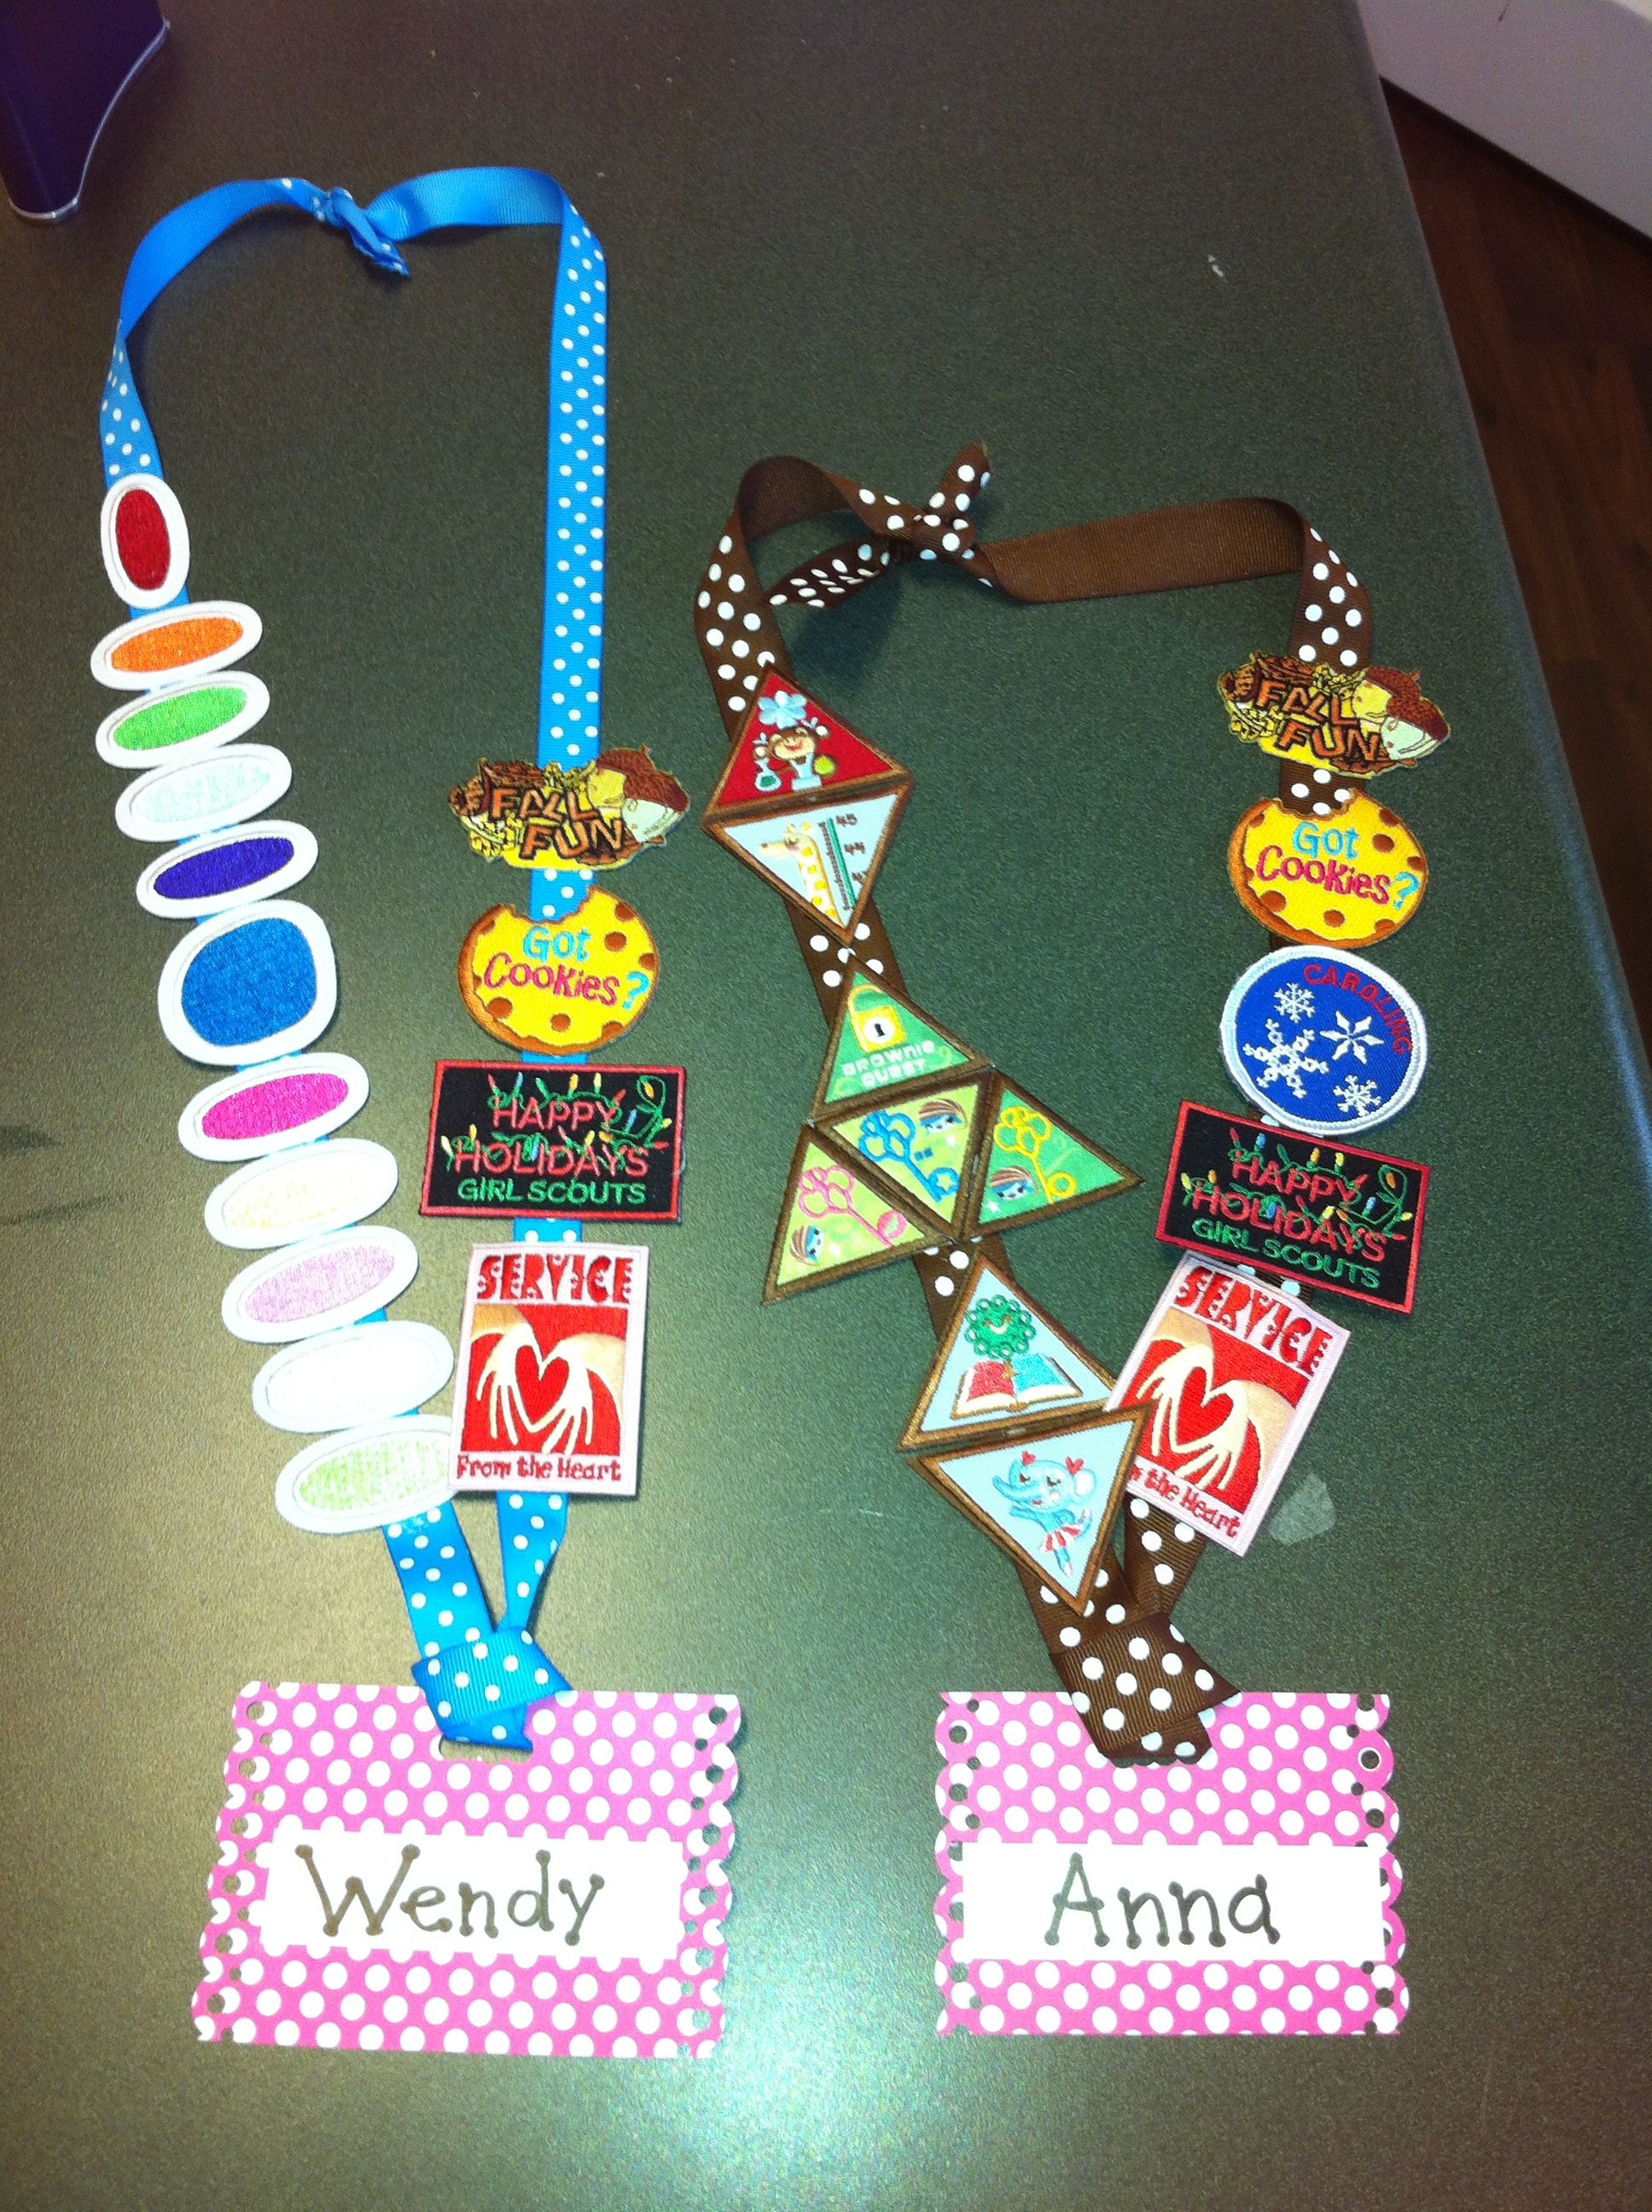 Girl scout scrapbook ideas - This Is A Cute Idea For Girl Scout Leaders